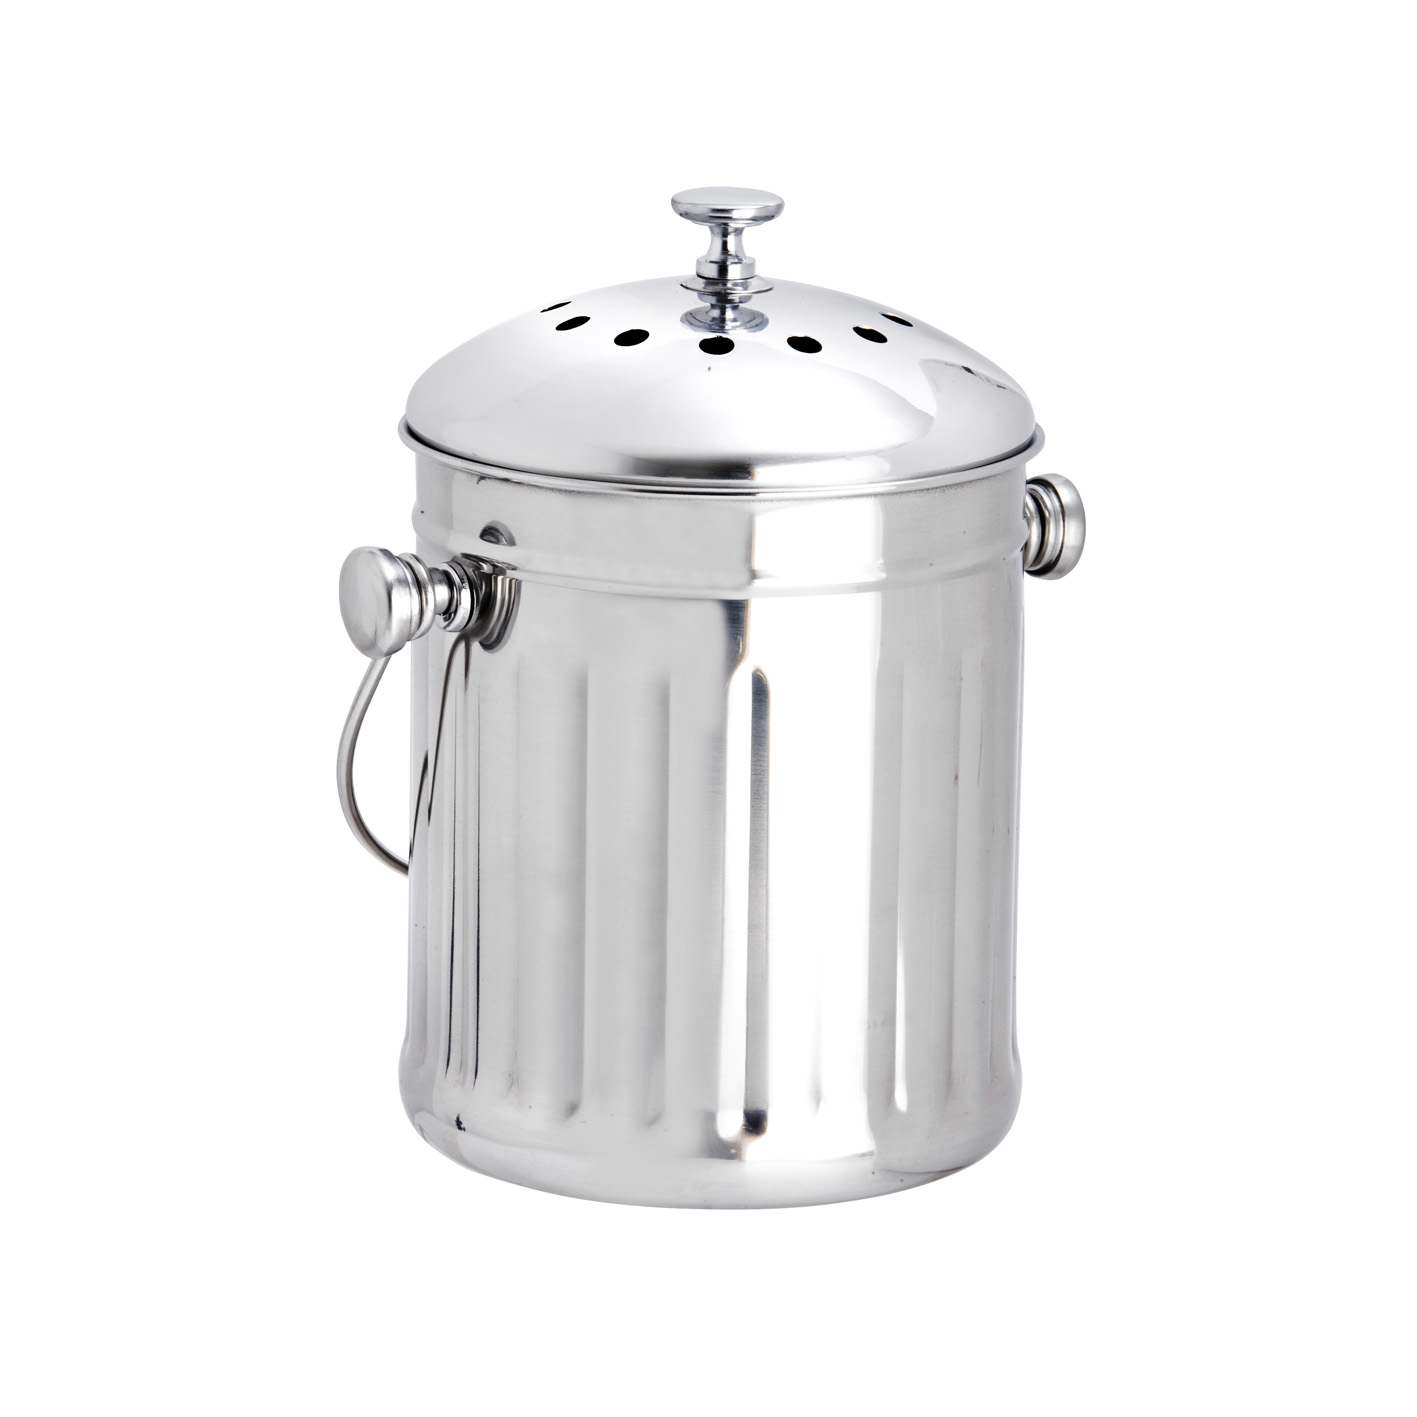 Details About Eddingtons Stainless Steel Kitchen Compost Pail Bin W Lid Filters 2 25l